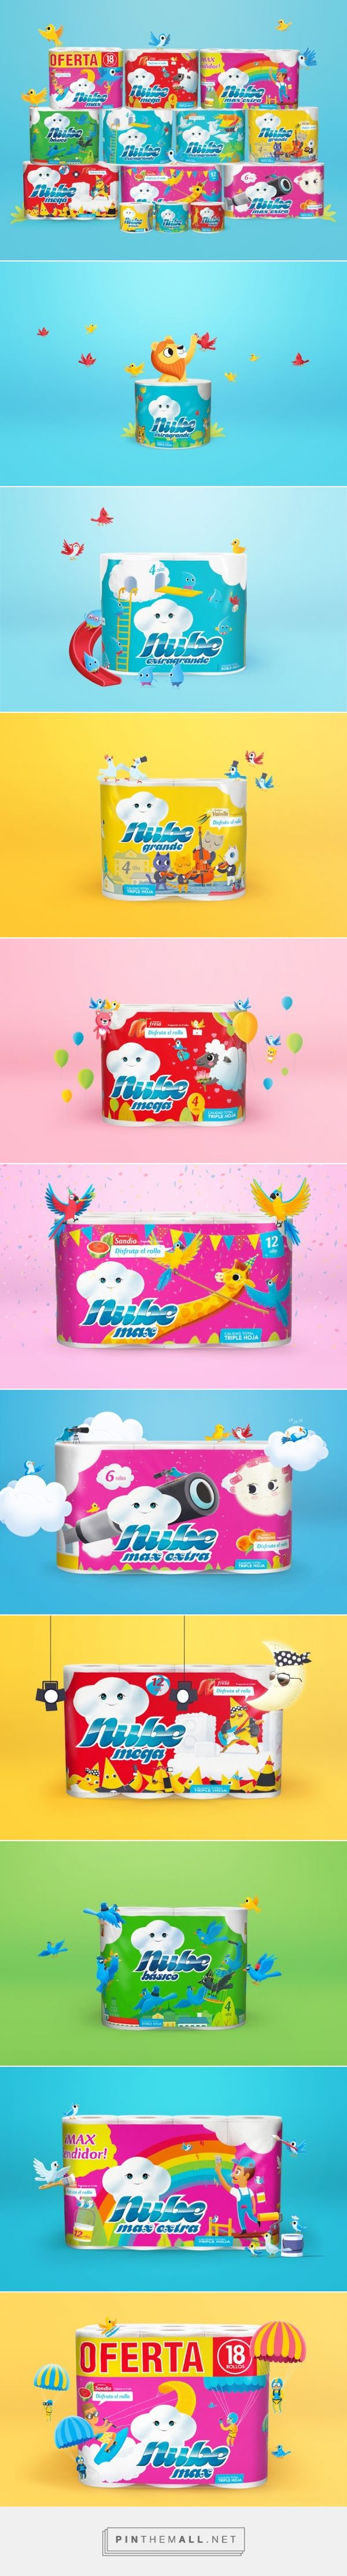 Nube (Cloud) Packaging - Packaging of the World - Creative Package Design Gallery - http://www.packagingoftheworld.com/2016/05/nube-cloud-packaging.html